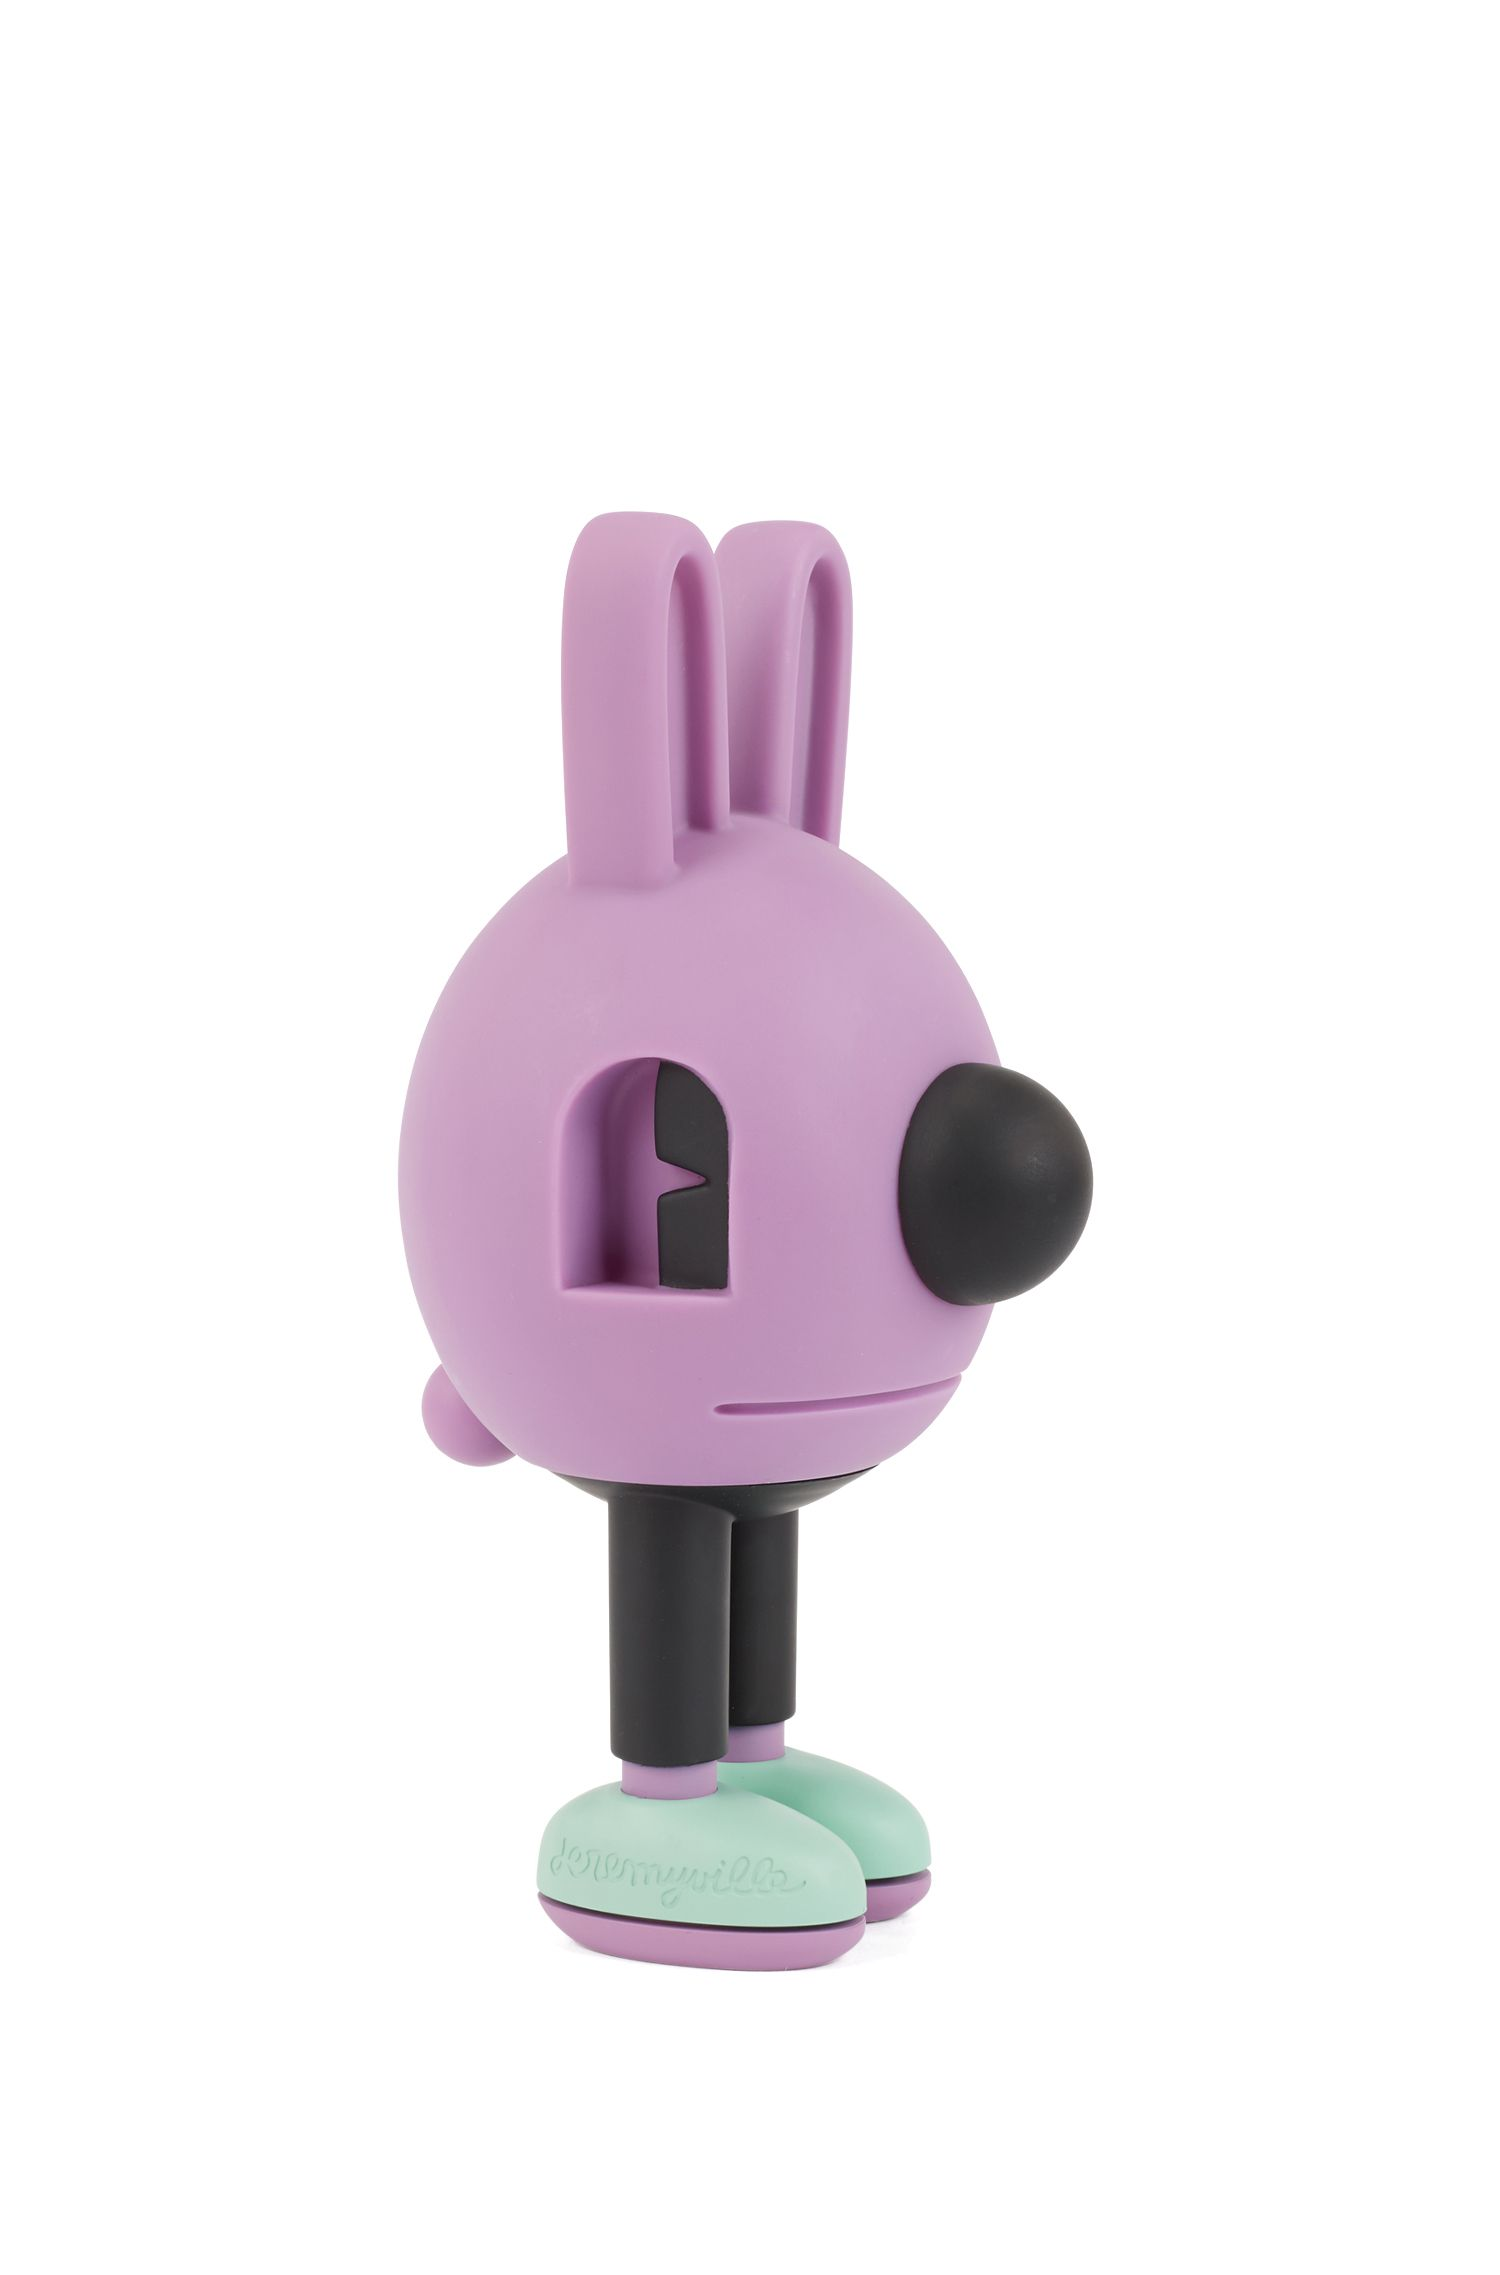 Colourful Jeremyville bunny figurine , Patterned